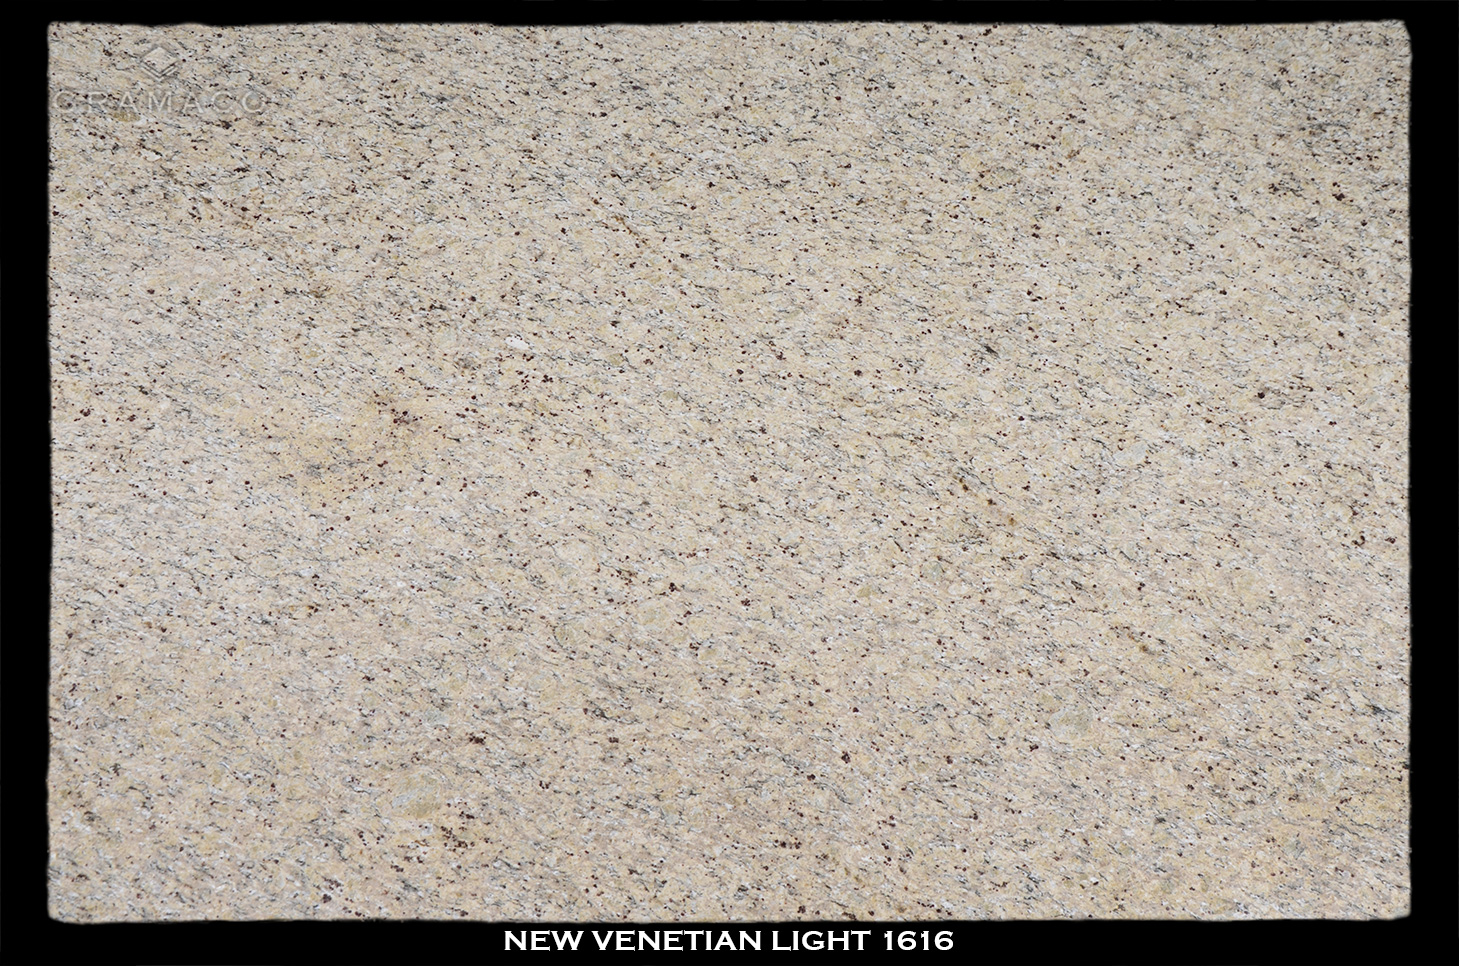 NEW-VENETIAN-LIGHT-1616-slab